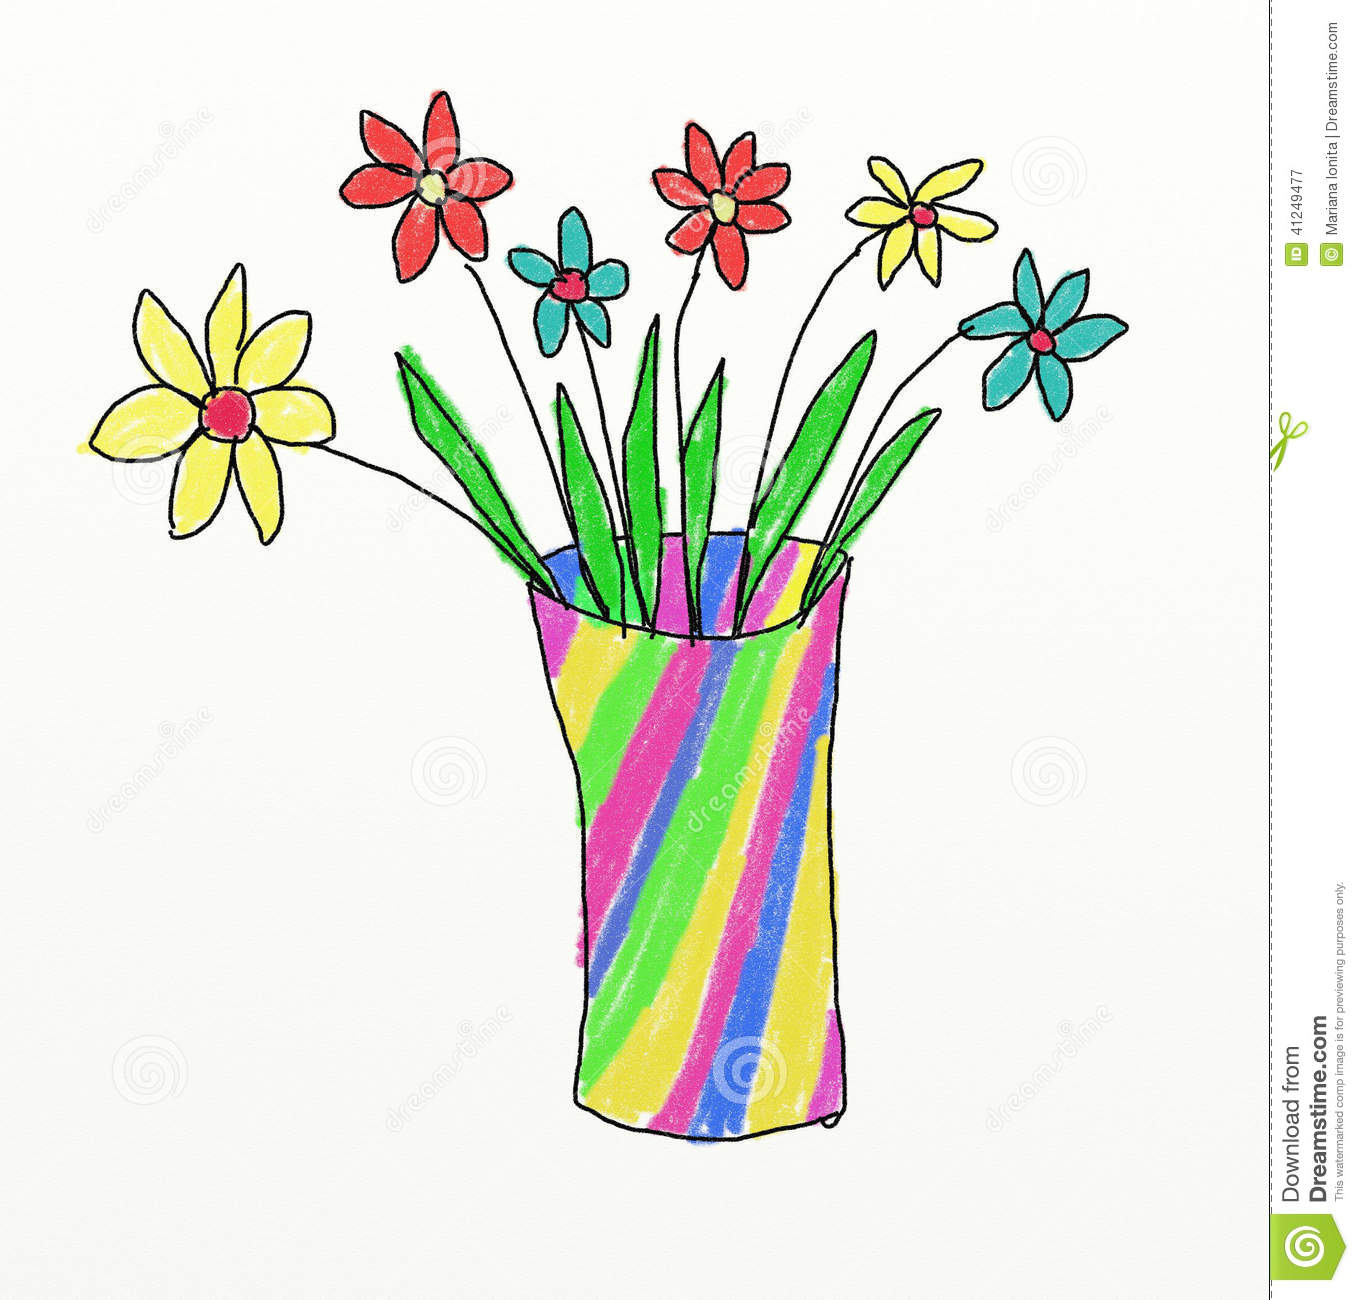 Vase with flowers children drawing stock illustration vase with flowers children drawing reviewsmspy